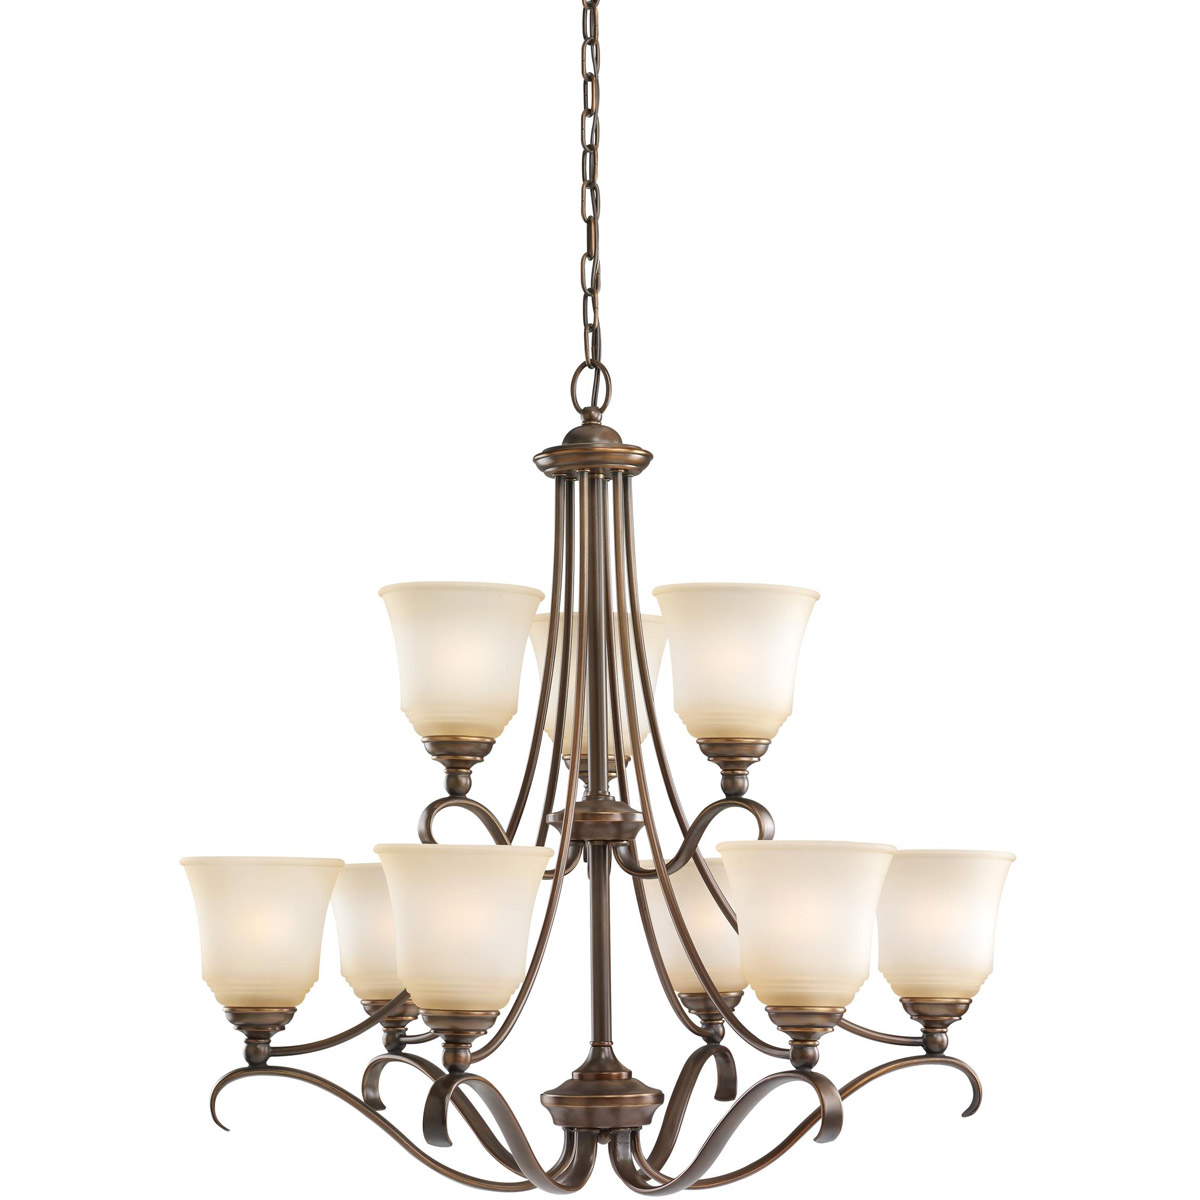 Sea Gull Lighting Parkview 9 Light Chandelier in Russet Bronze 31381-829